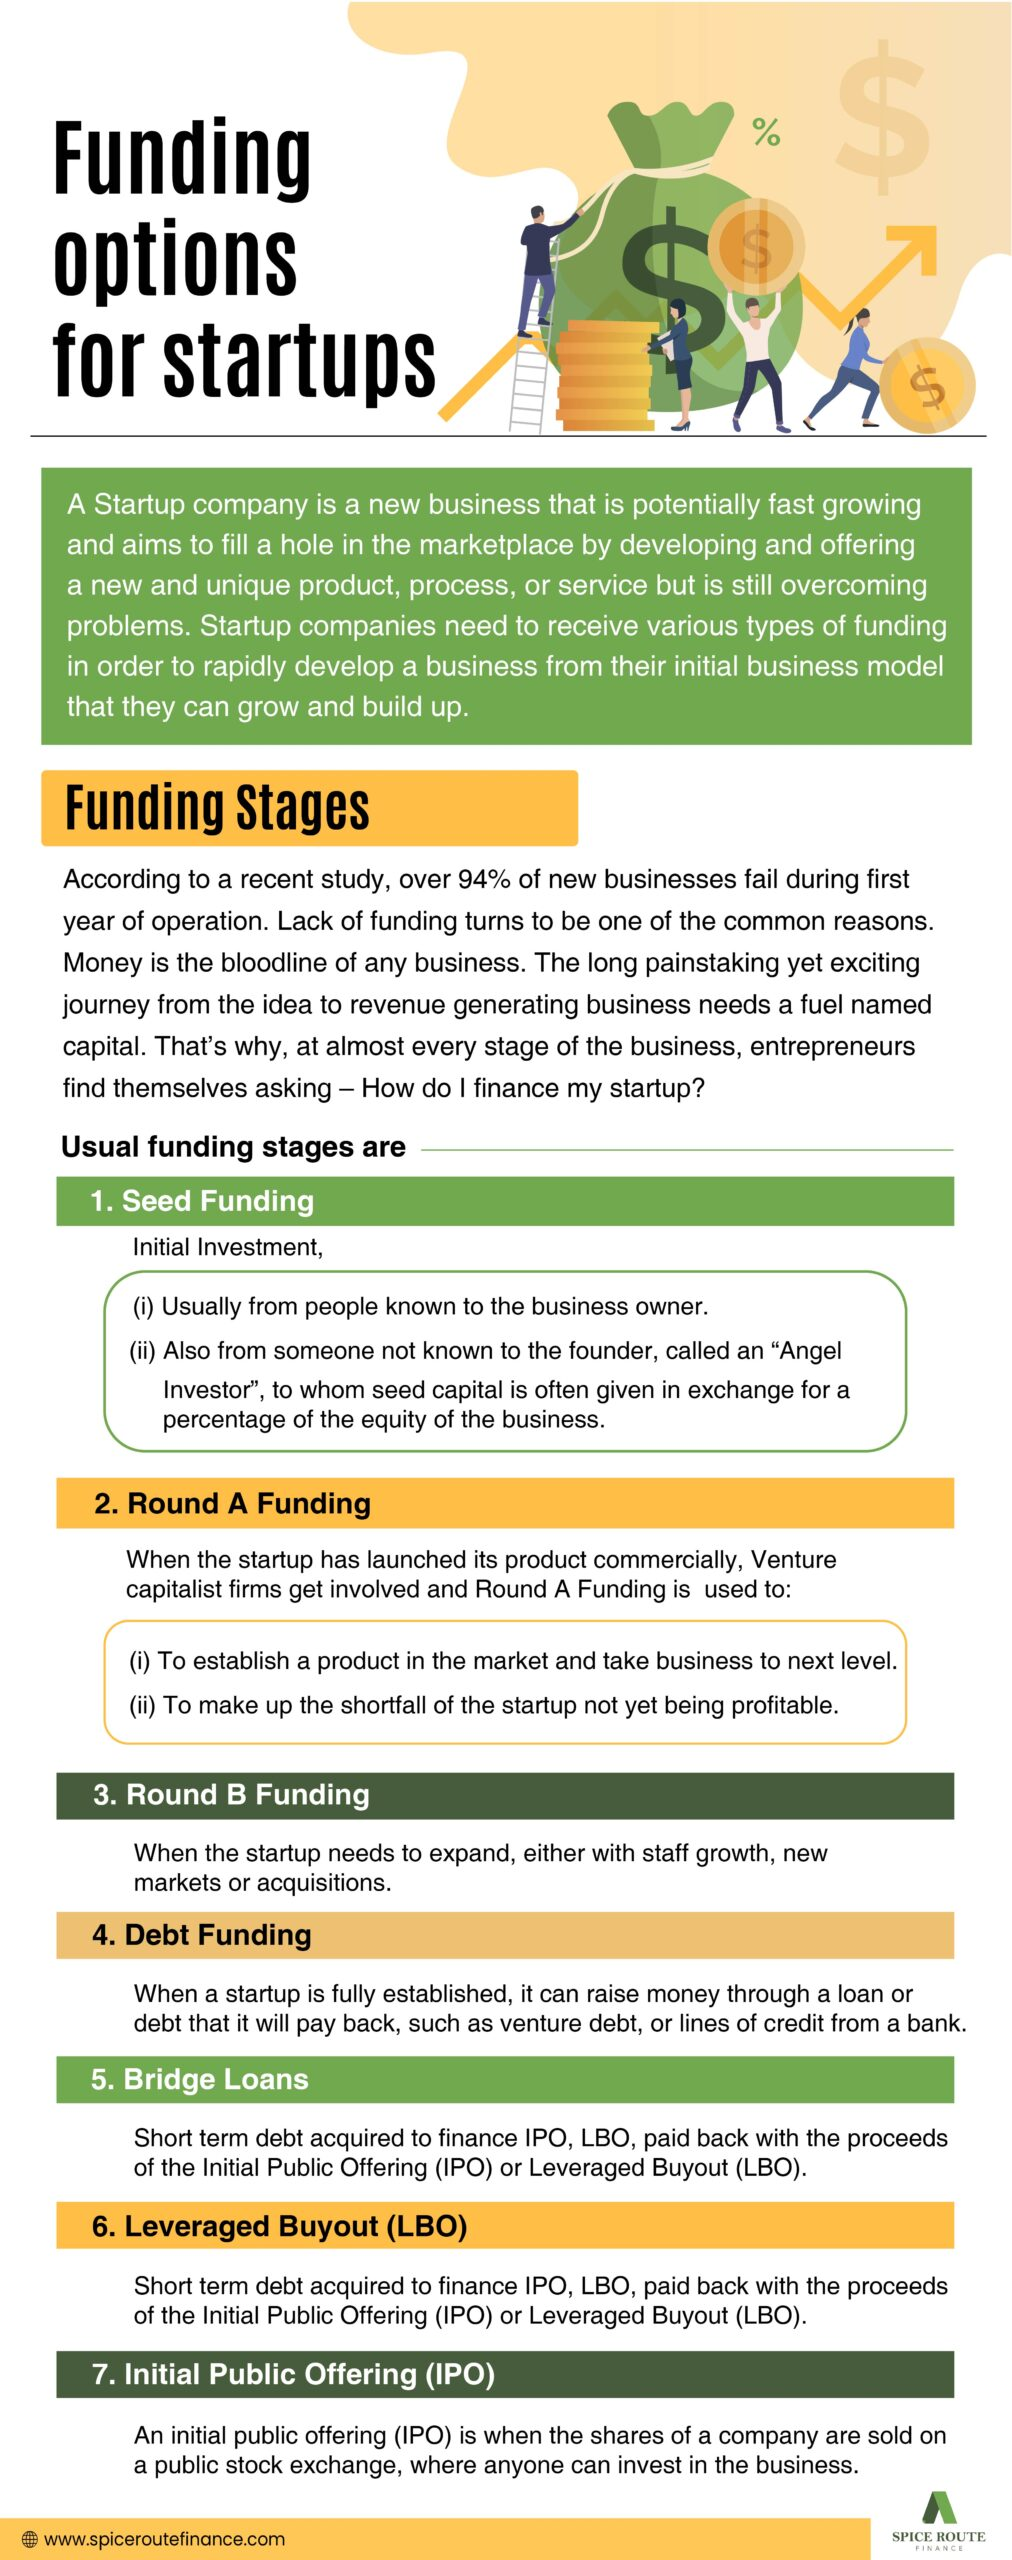 Funding options for startups